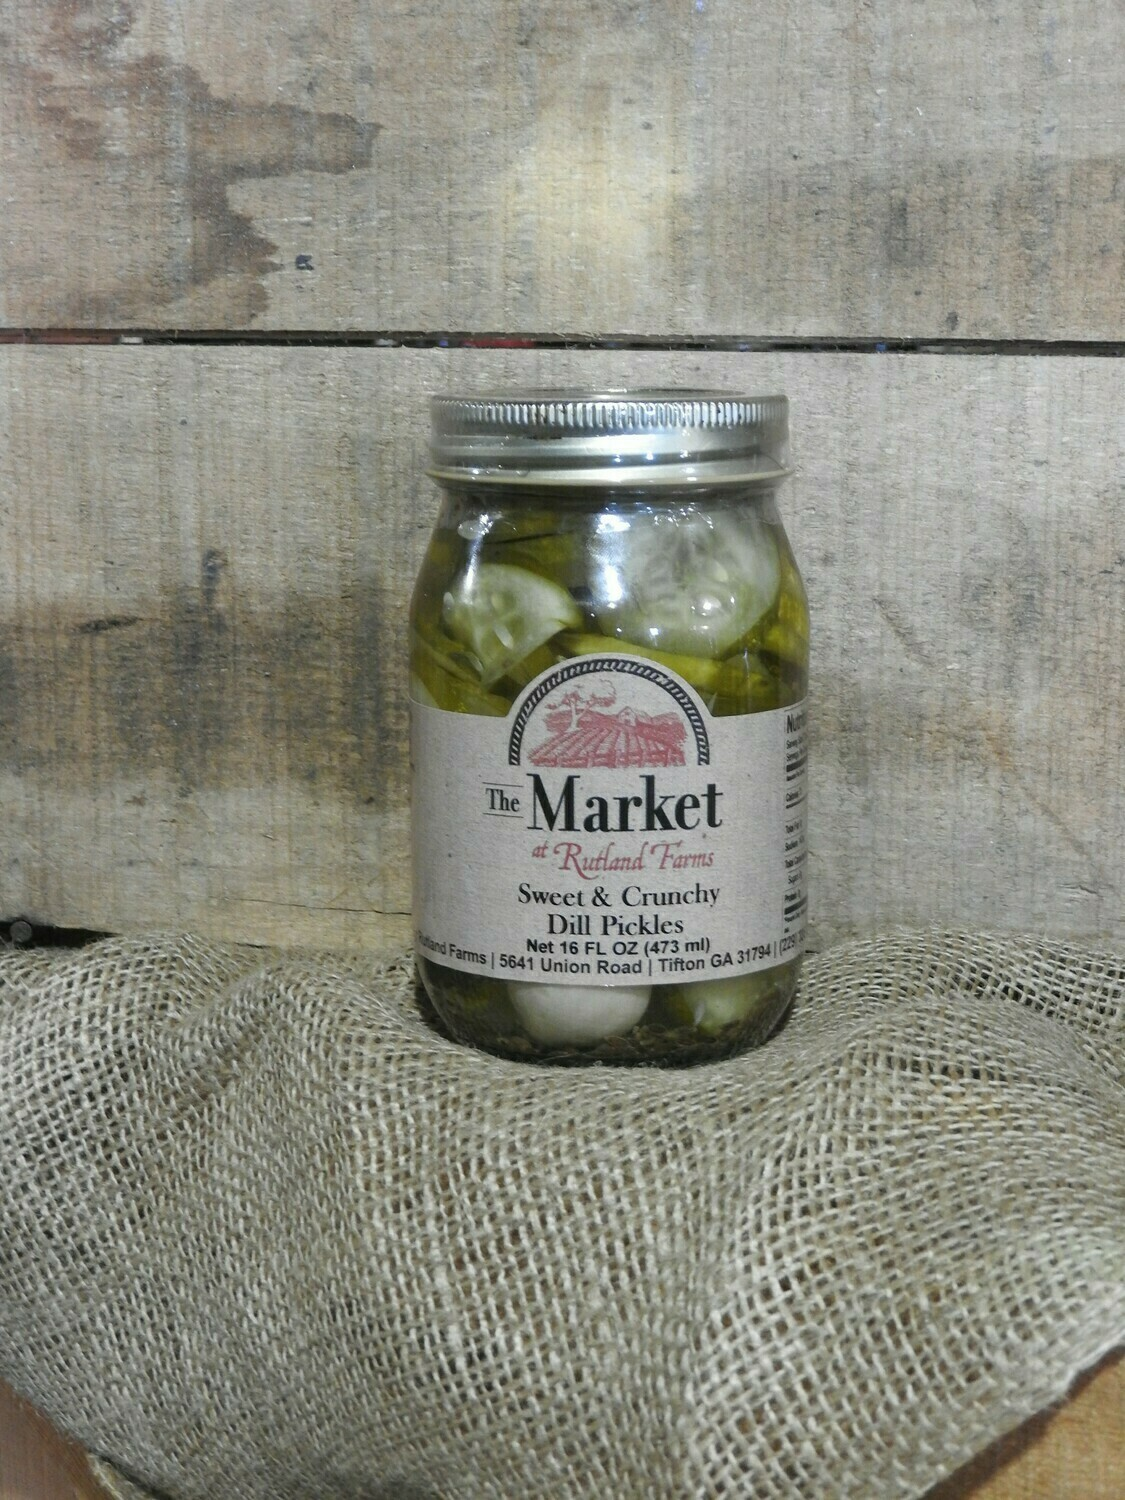 Sweet & Crunchy Dill Pickles